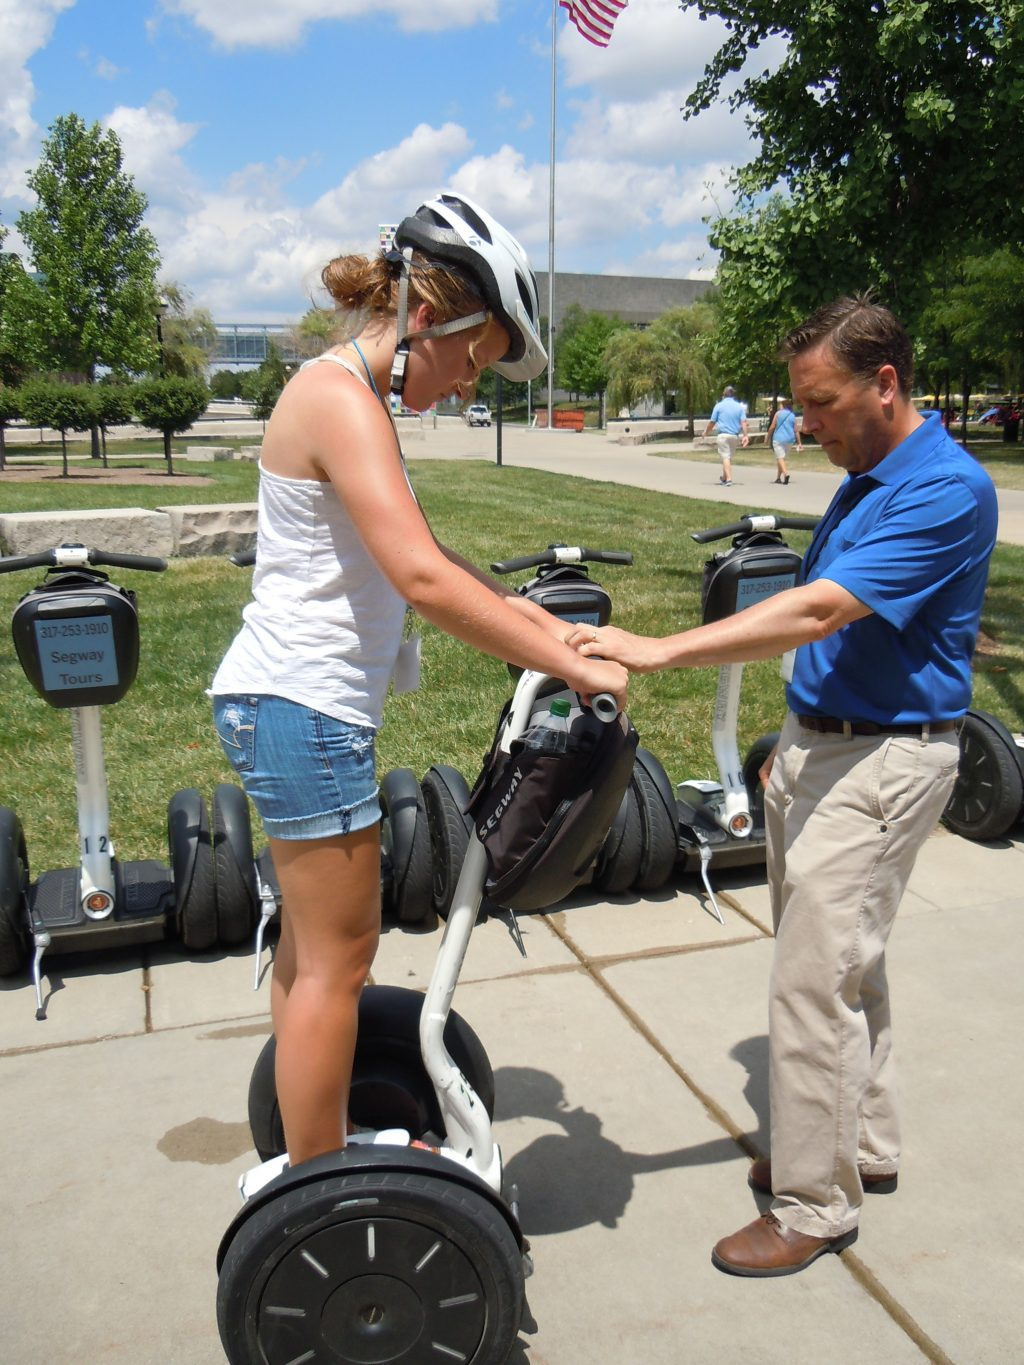 Indiana white county idaville - White River State Park Director Bob Whitt Gives A Segway Lesson To Emily Roark